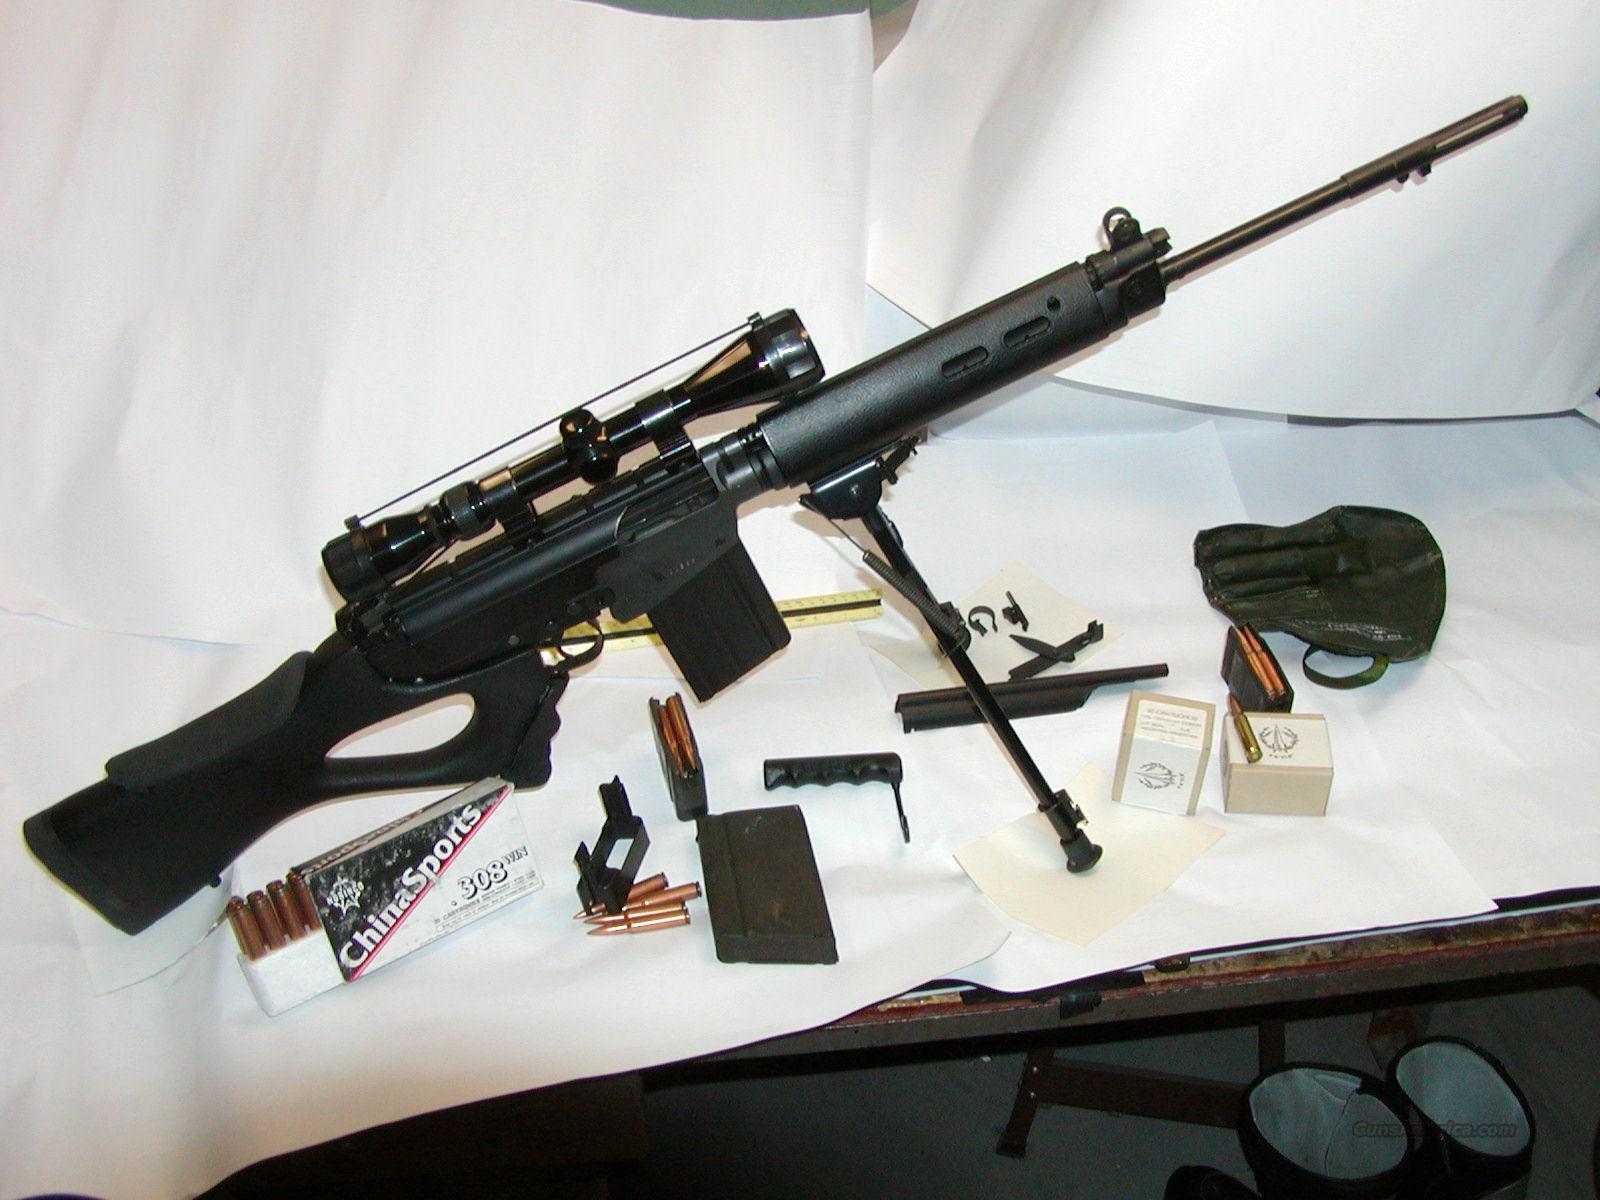 Fn Fal L1a1 Semi Auto Rifle For Sale